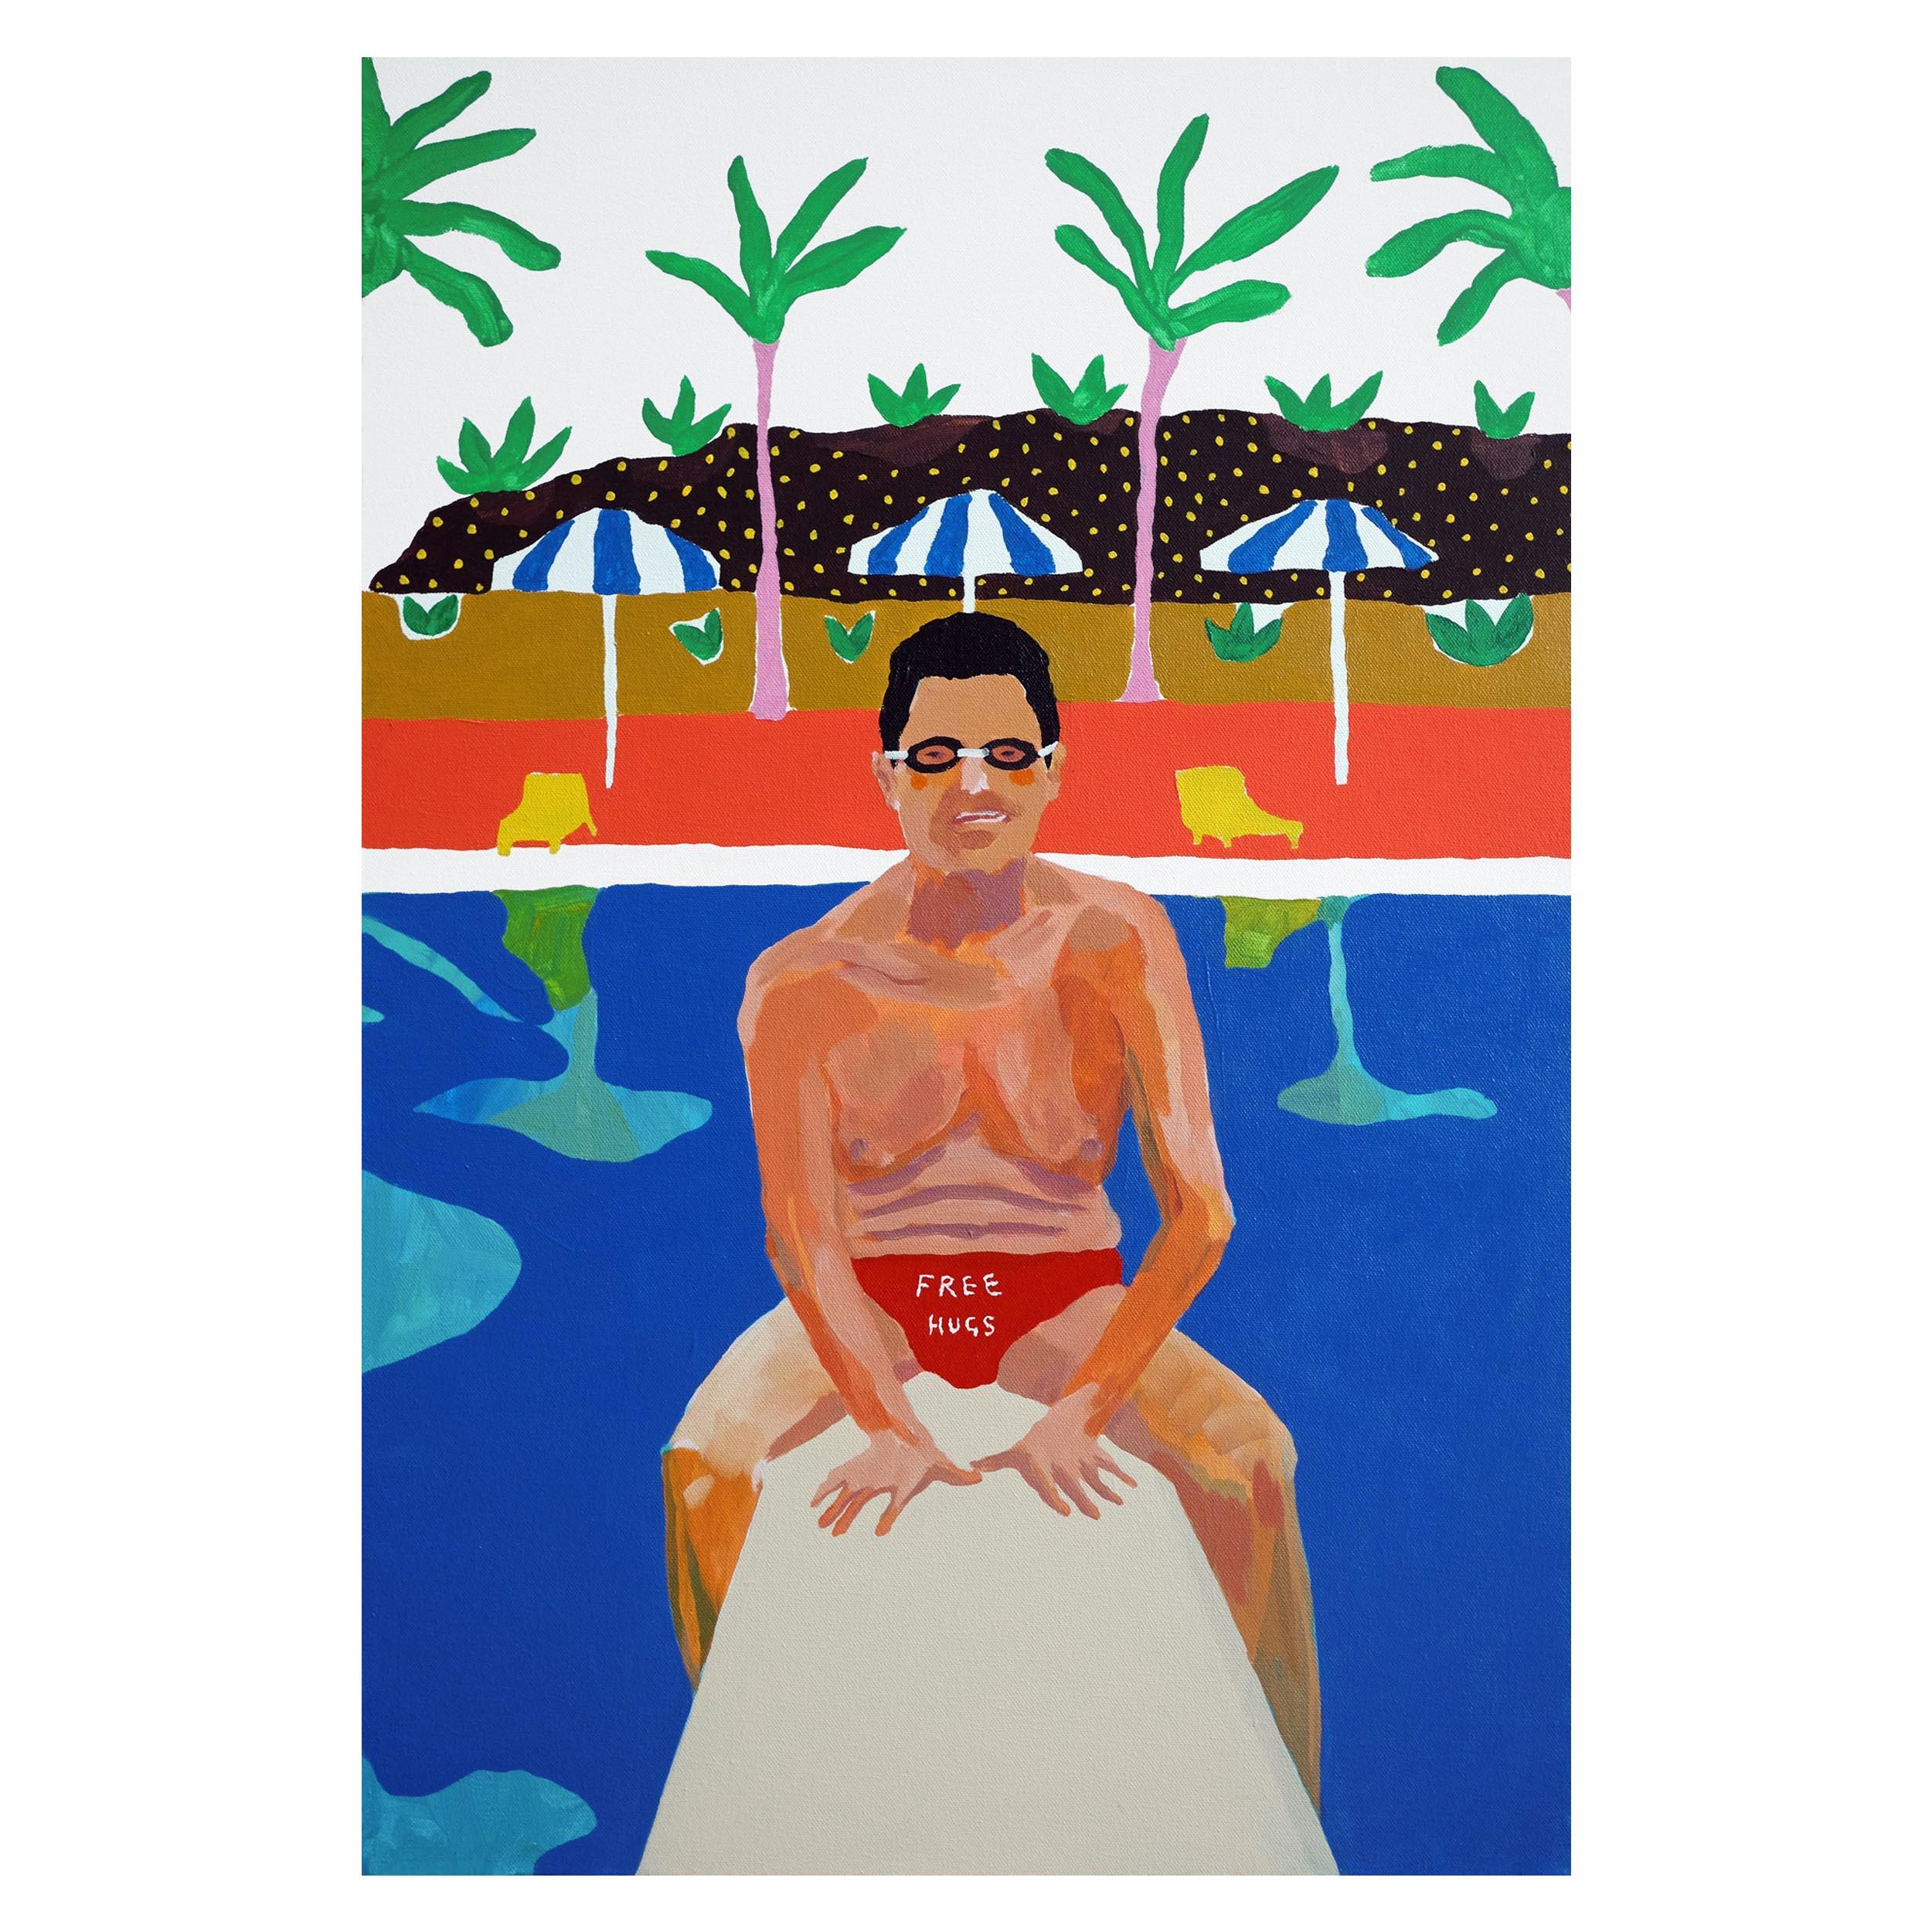 'A Special Offer' Portrait Painting by Alan Fears Pop Art